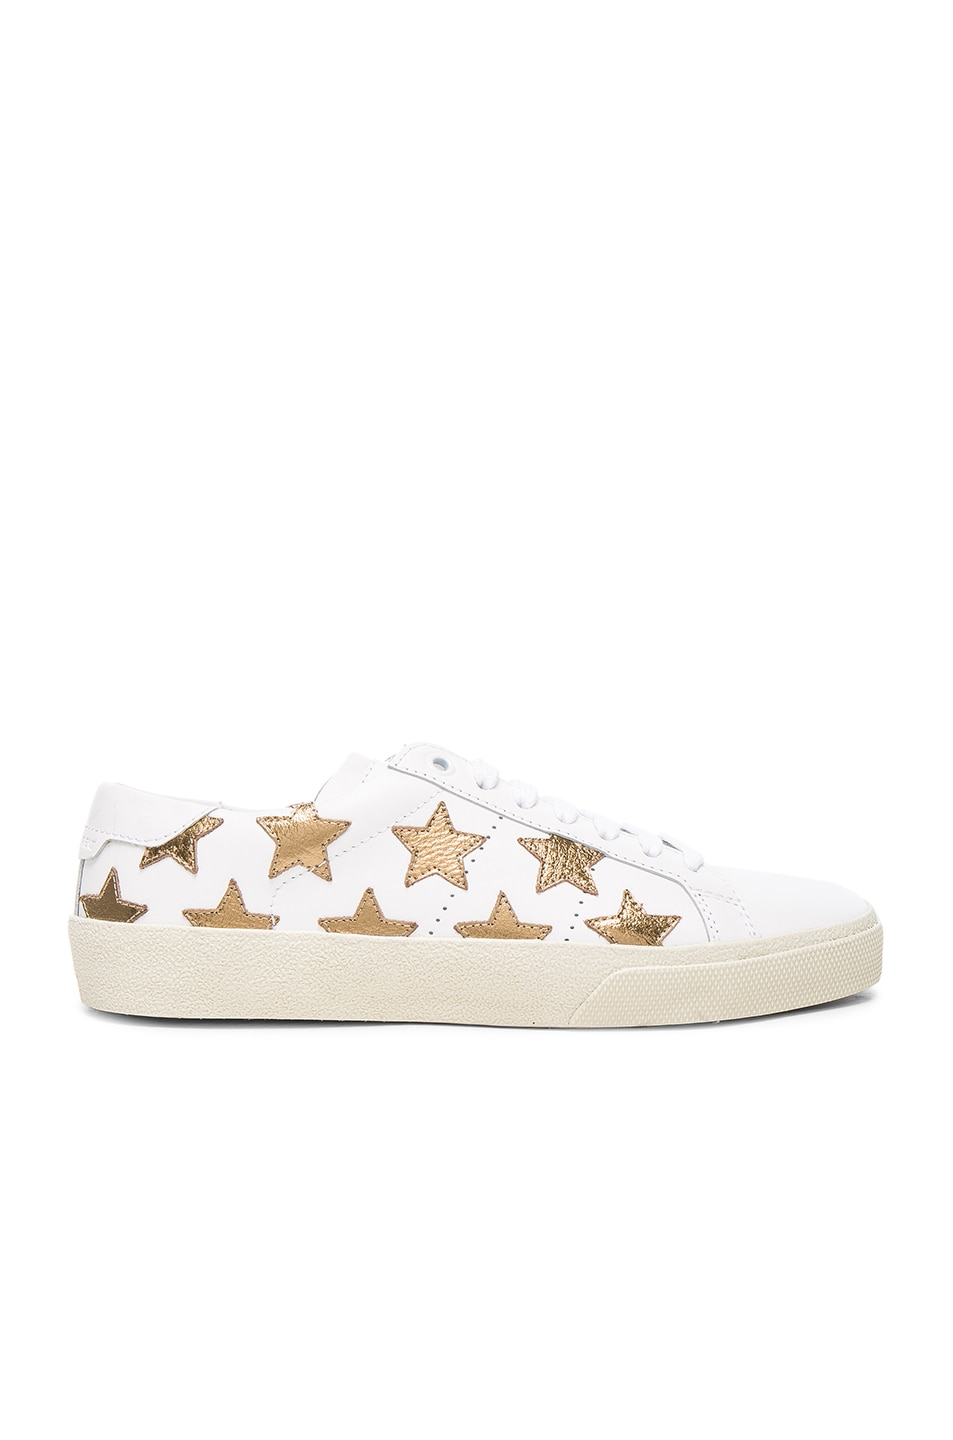 Image 1 of Saint Laurent Court Classic Star Leather Sneakers in Gold & Off White